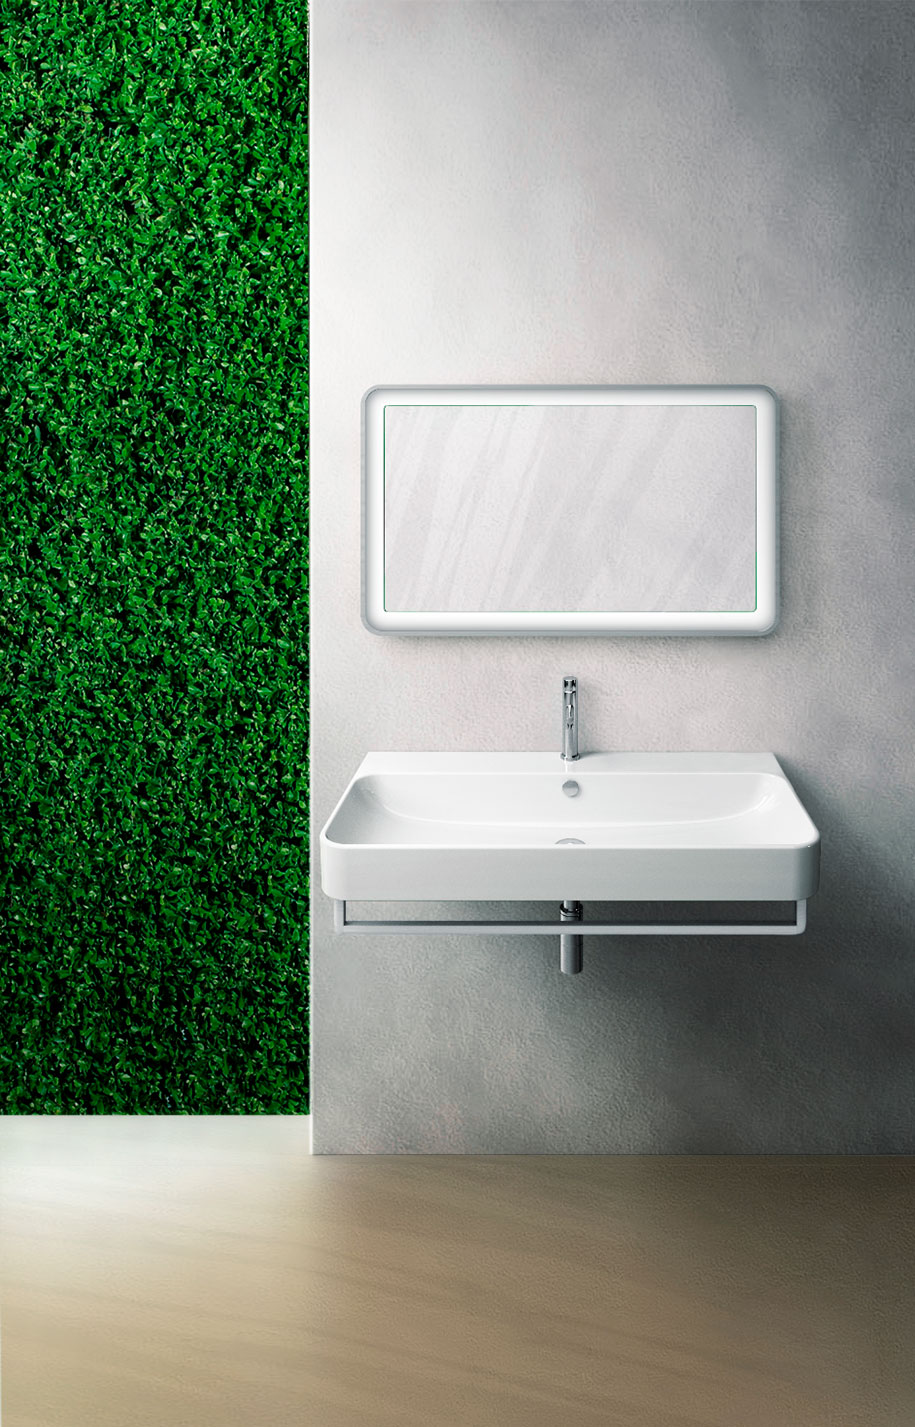 Placing Green Sustainability In The Bathroom Habitus Living